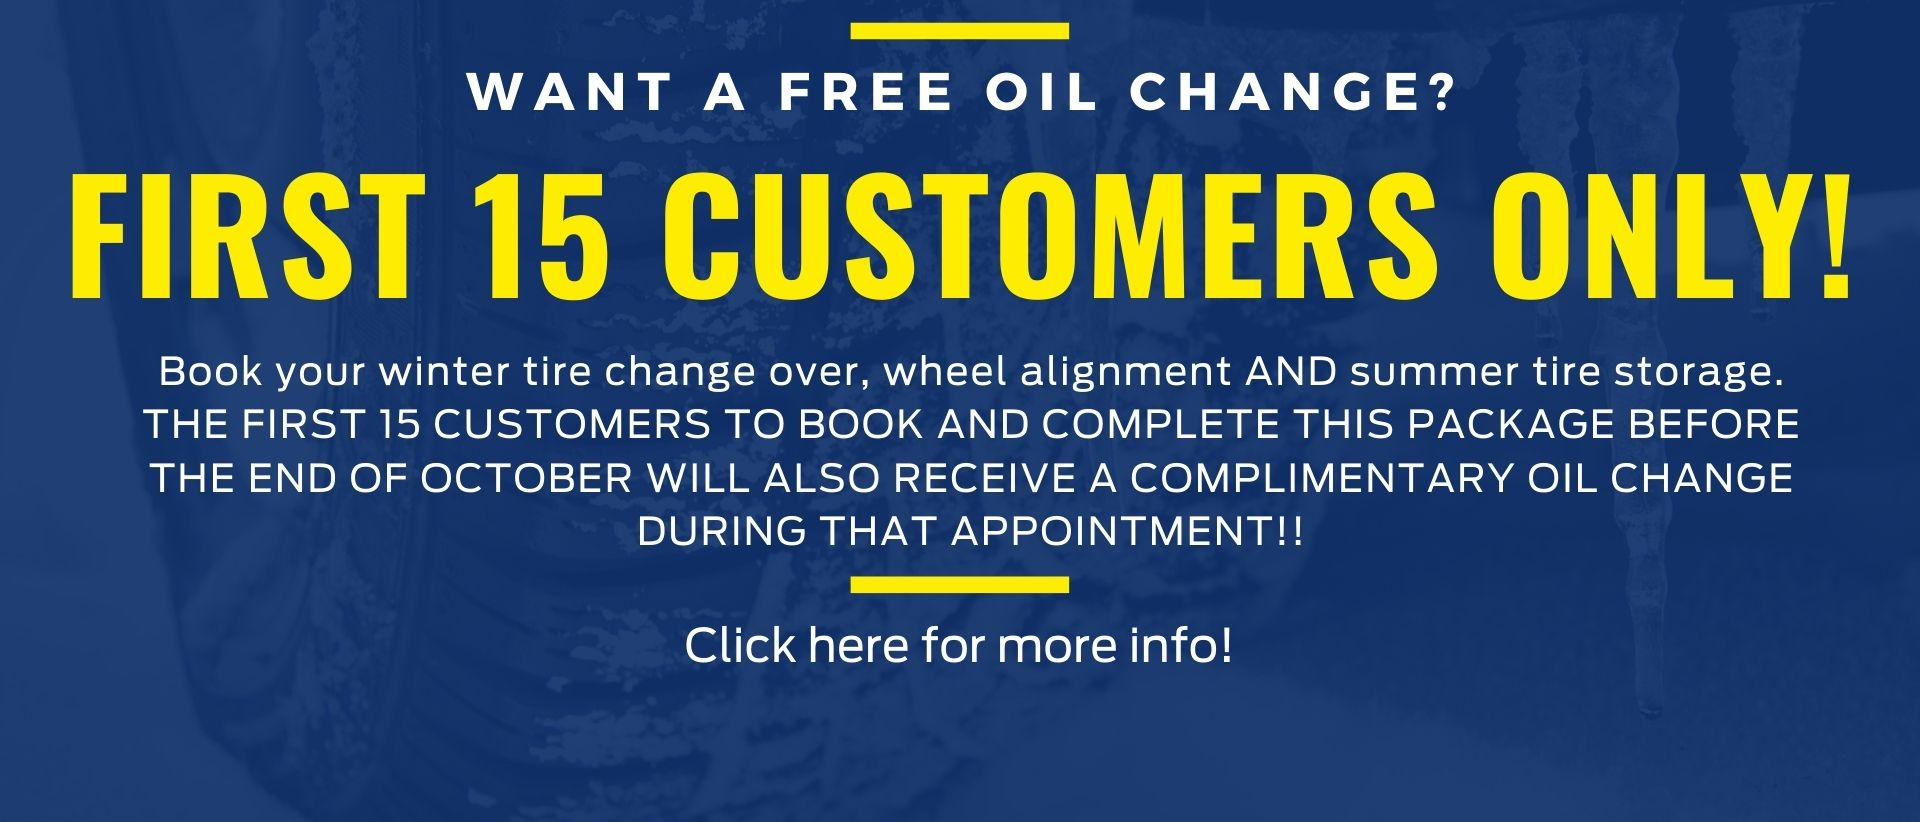 Copy Of Want A Free Oil Change (1)